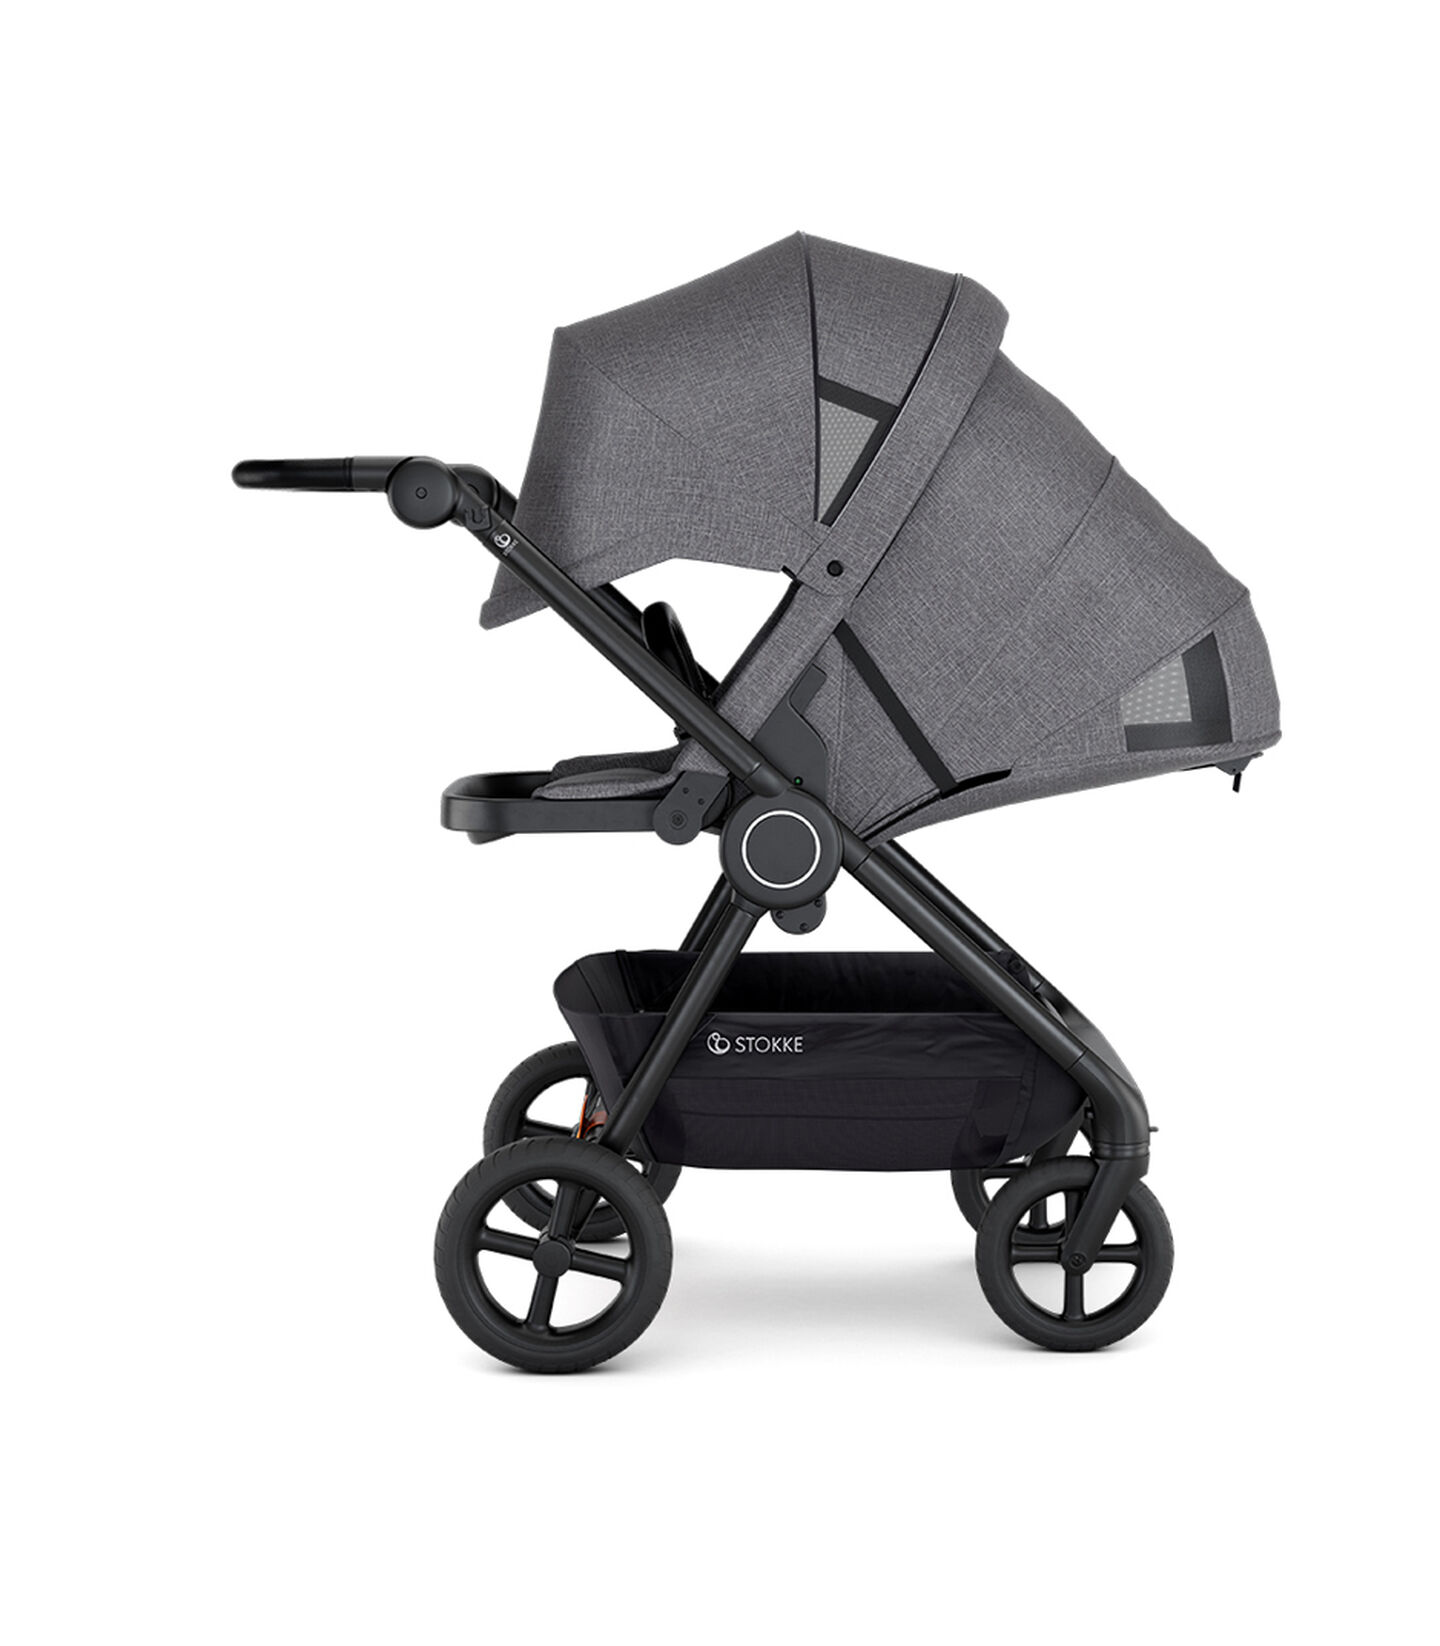 Stokke® Beat™ with Seat. Black Melange. Parent facing. Extended Canopy. Sleep position.